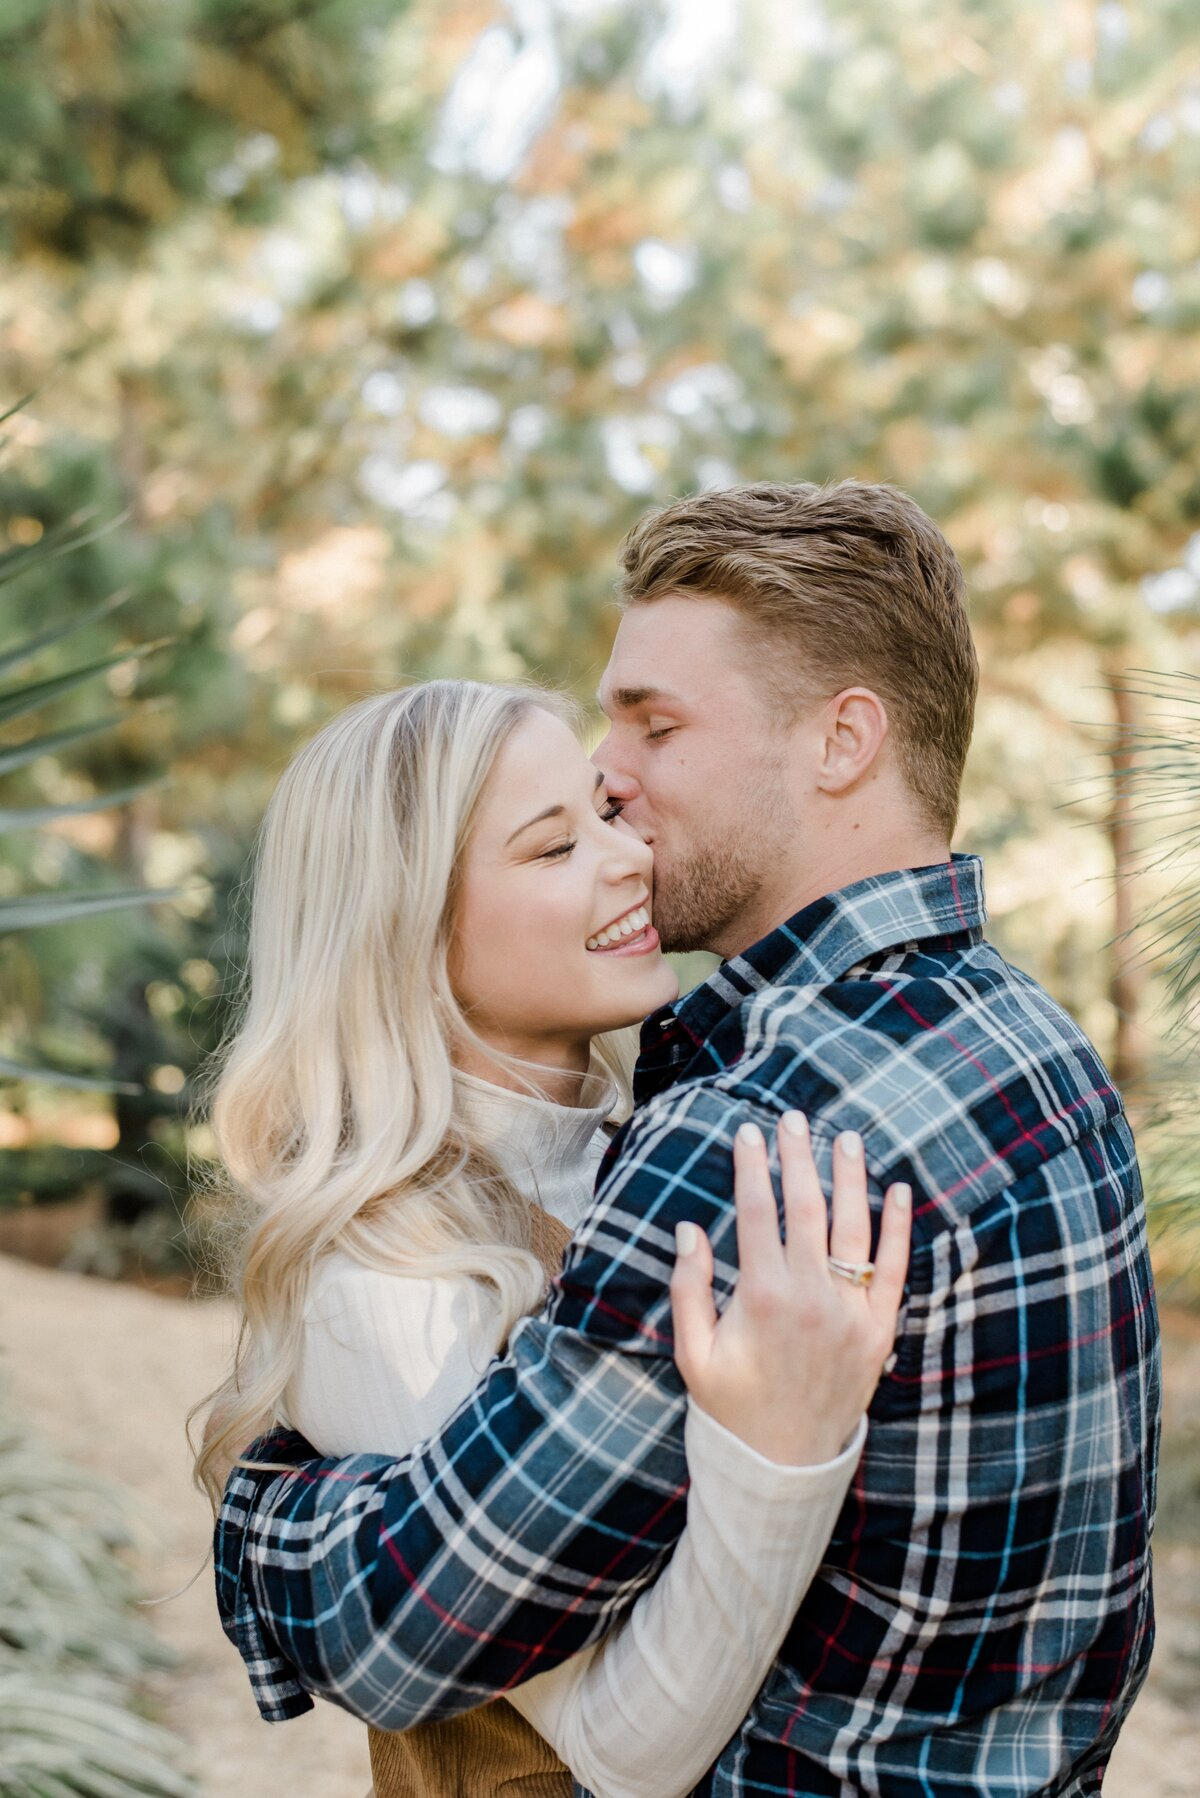 Engagement photographer Texas | Patti Darby Photography 15